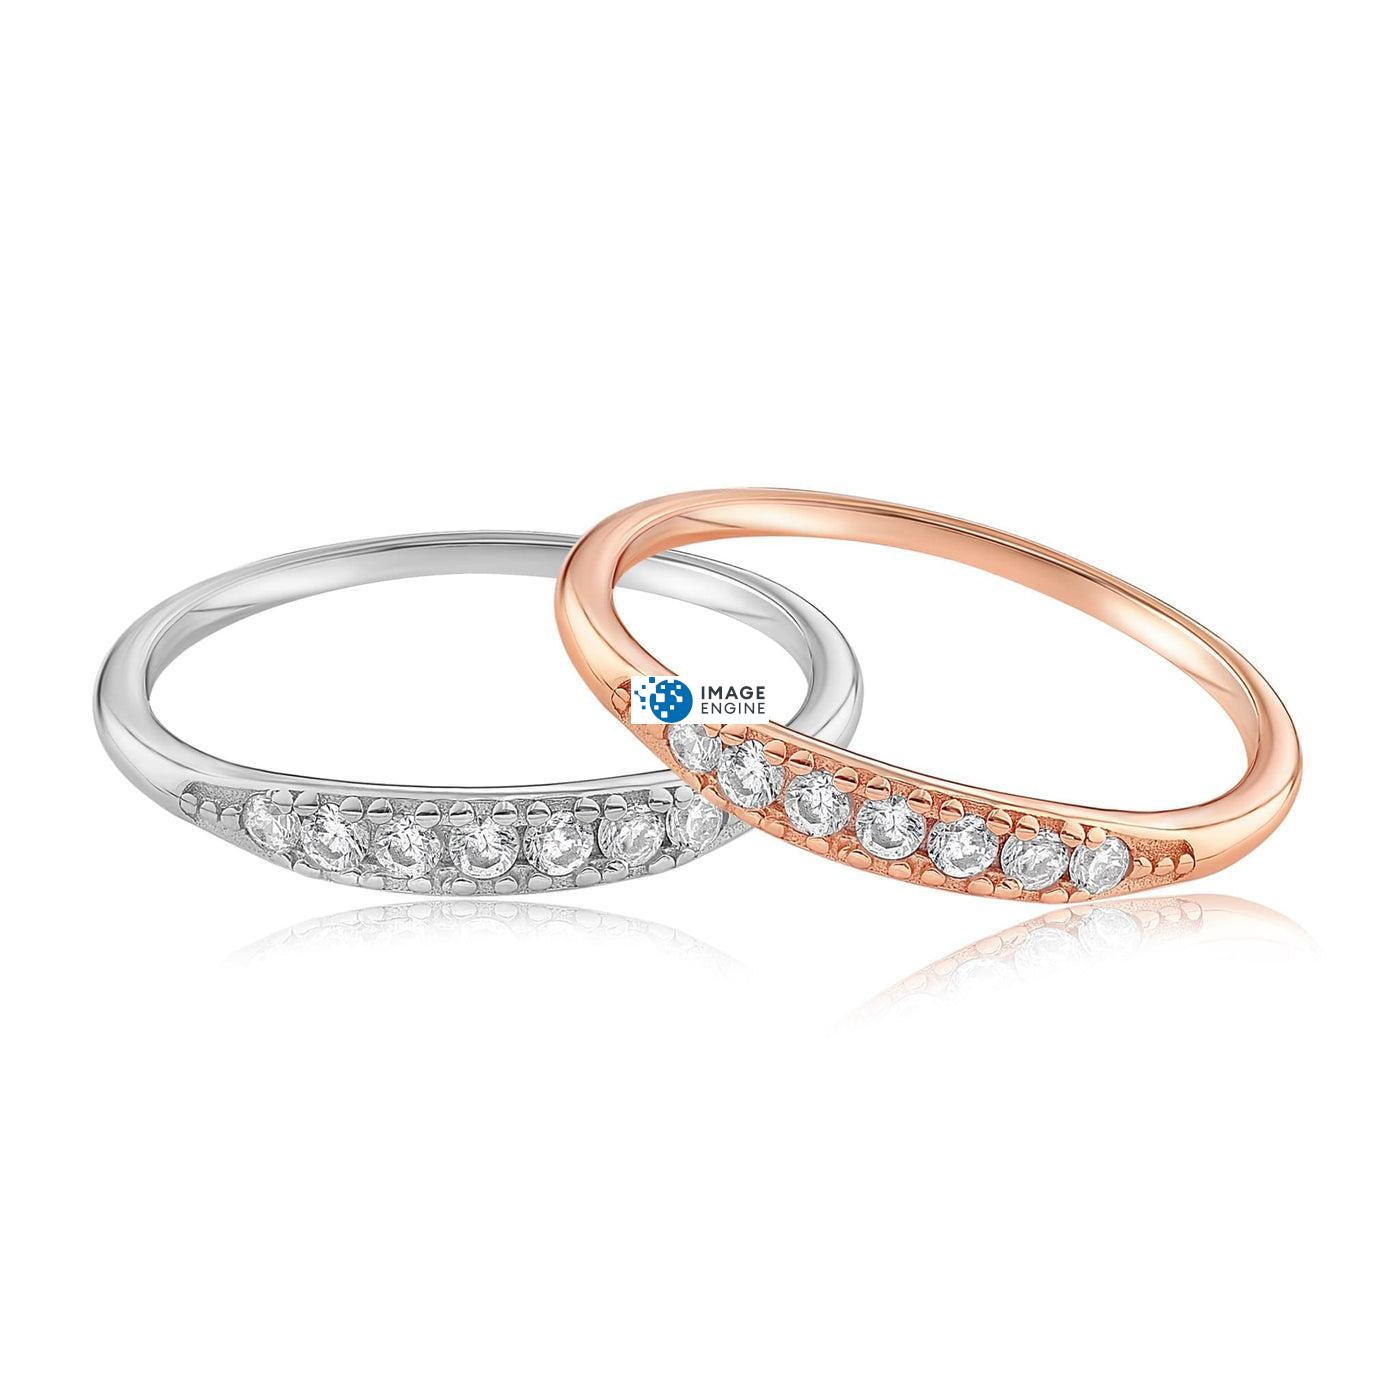 Kathleen Stack Ring - Front View Side by Side - 18K Rose Gold Vermeil and 925 Sterling Silver